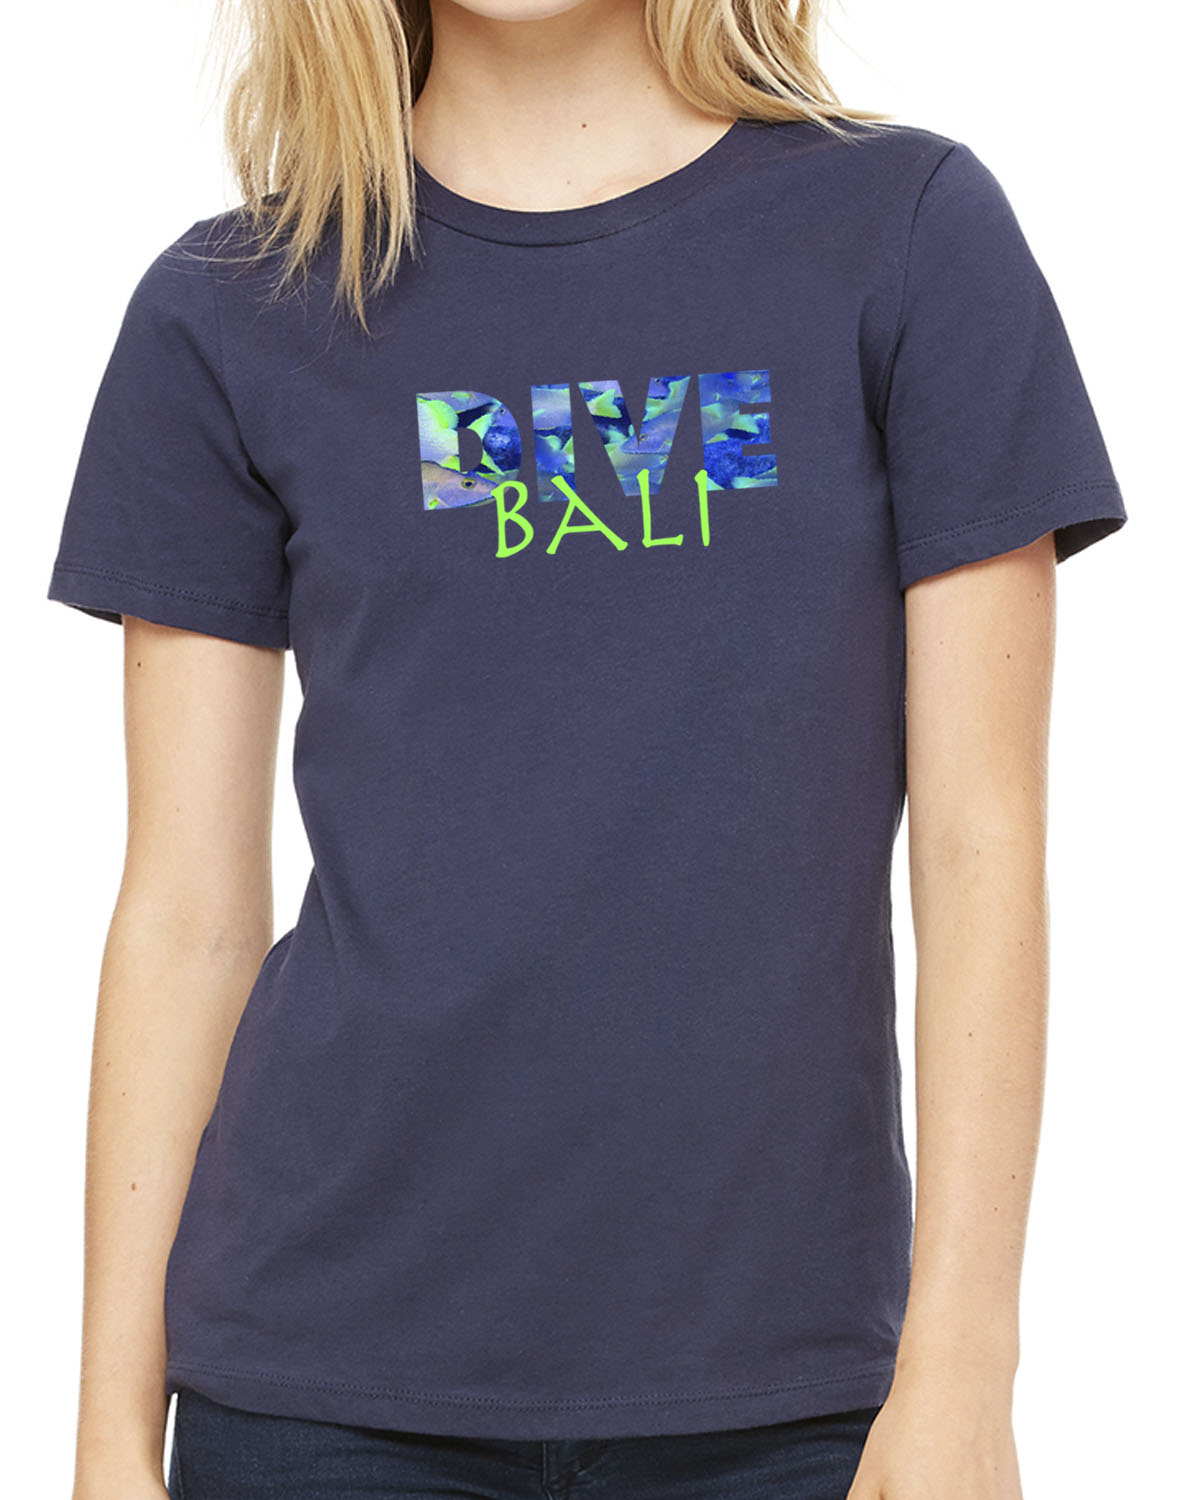 Women's DIVE Indonesia Short sleeve t-shirt (carolina blue)